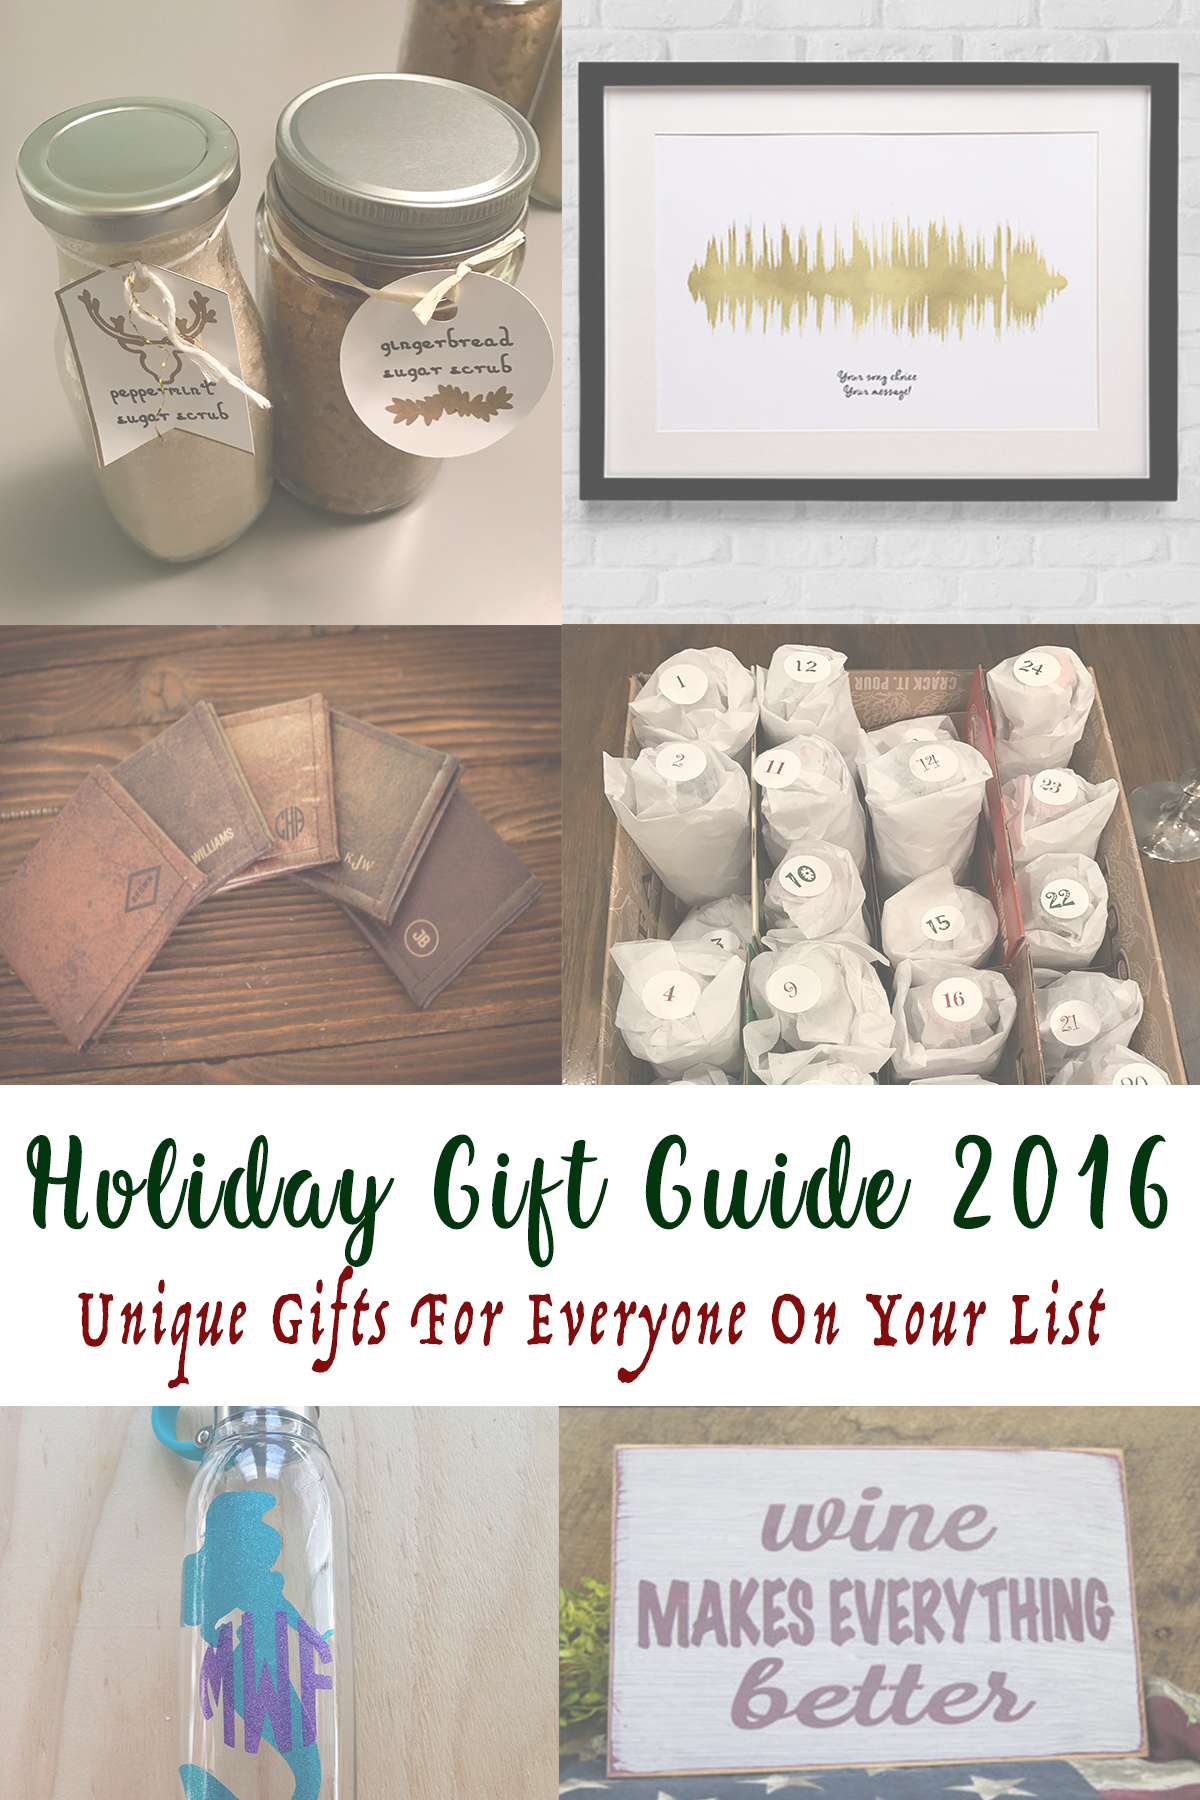 Great gift ideas to please everyone on your list